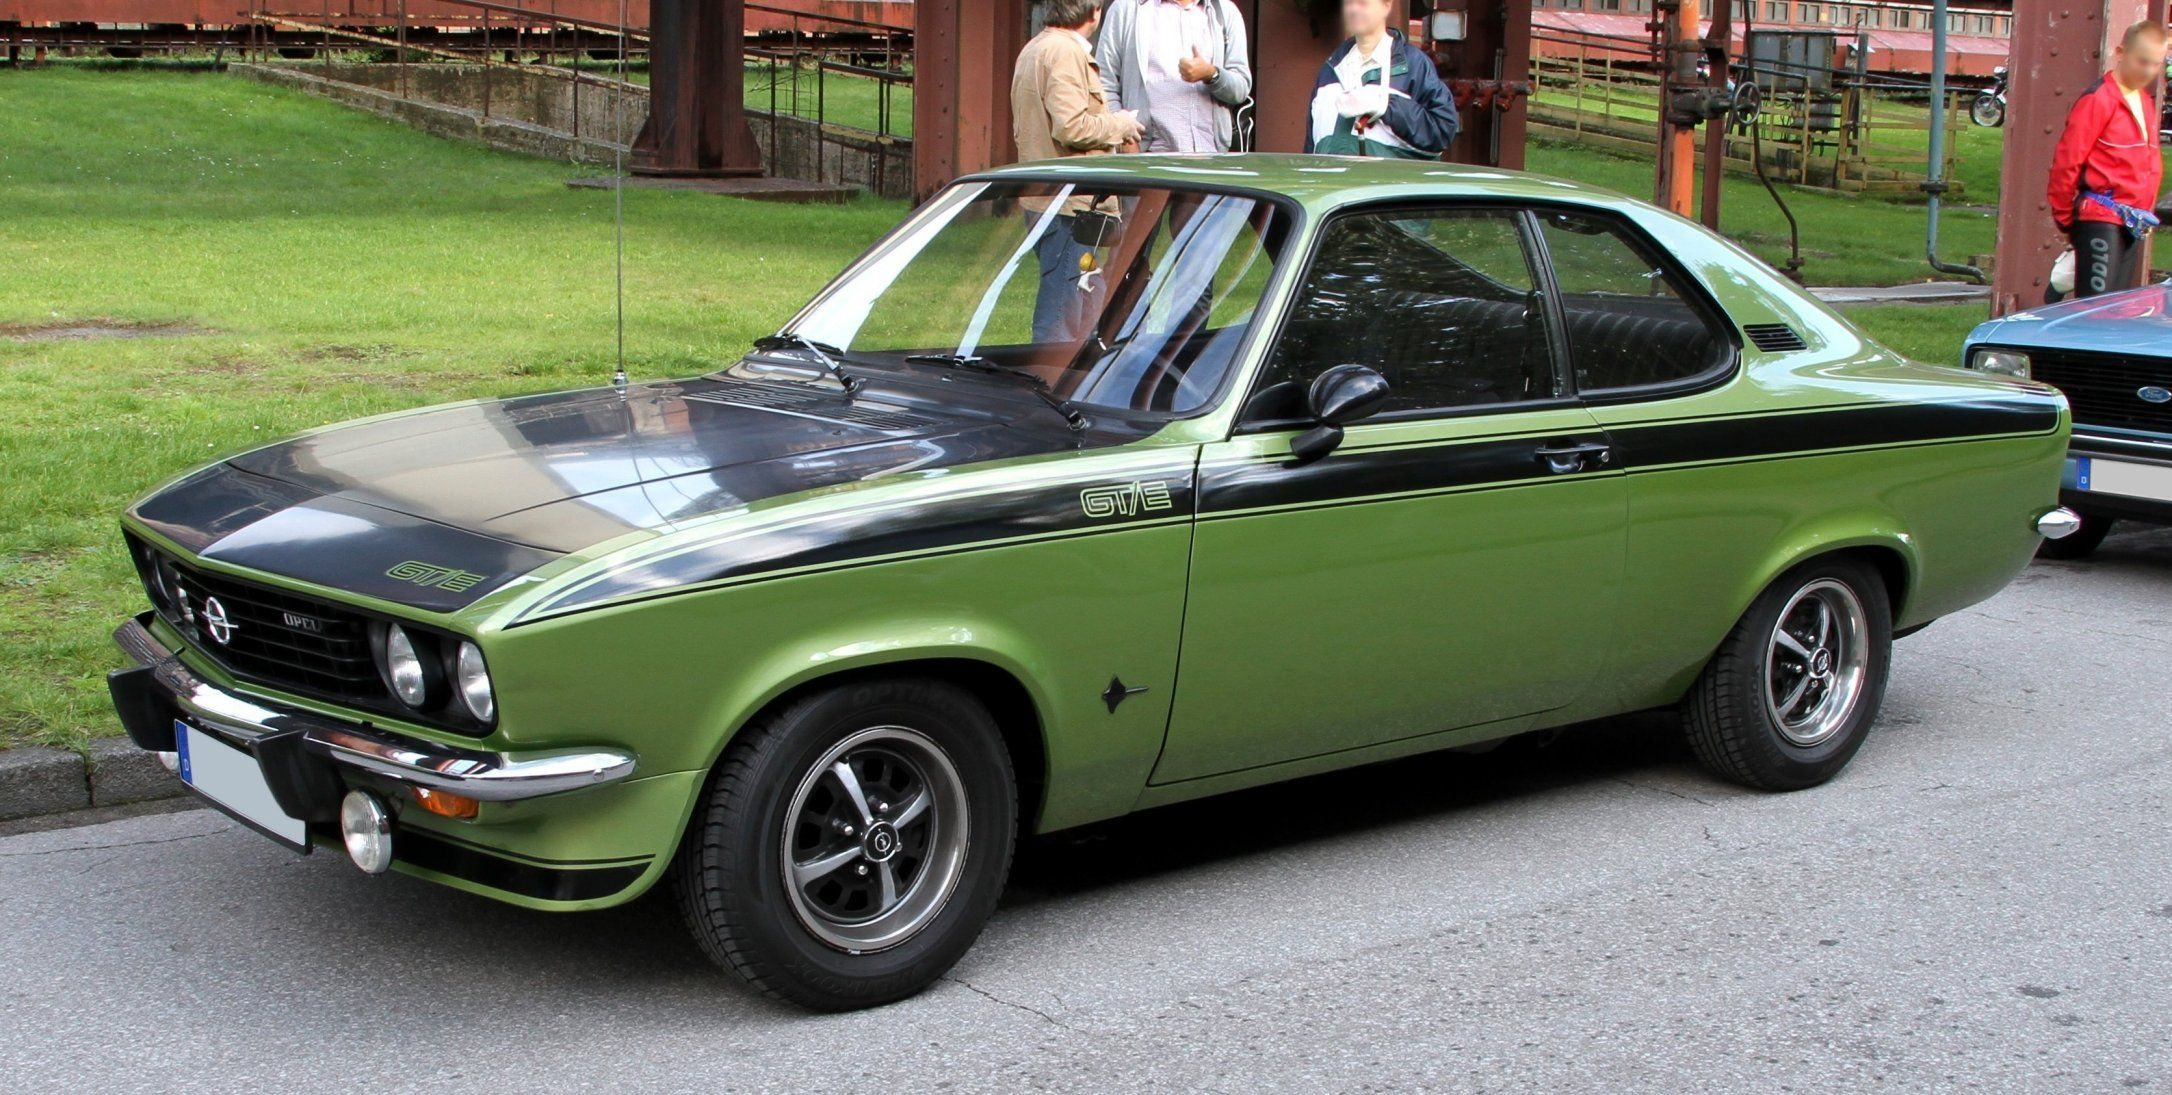 1000 images about opel manta on pinterest opel manta black magic and autos. Black Bedroom Furniture Sets. Home Design Ideas